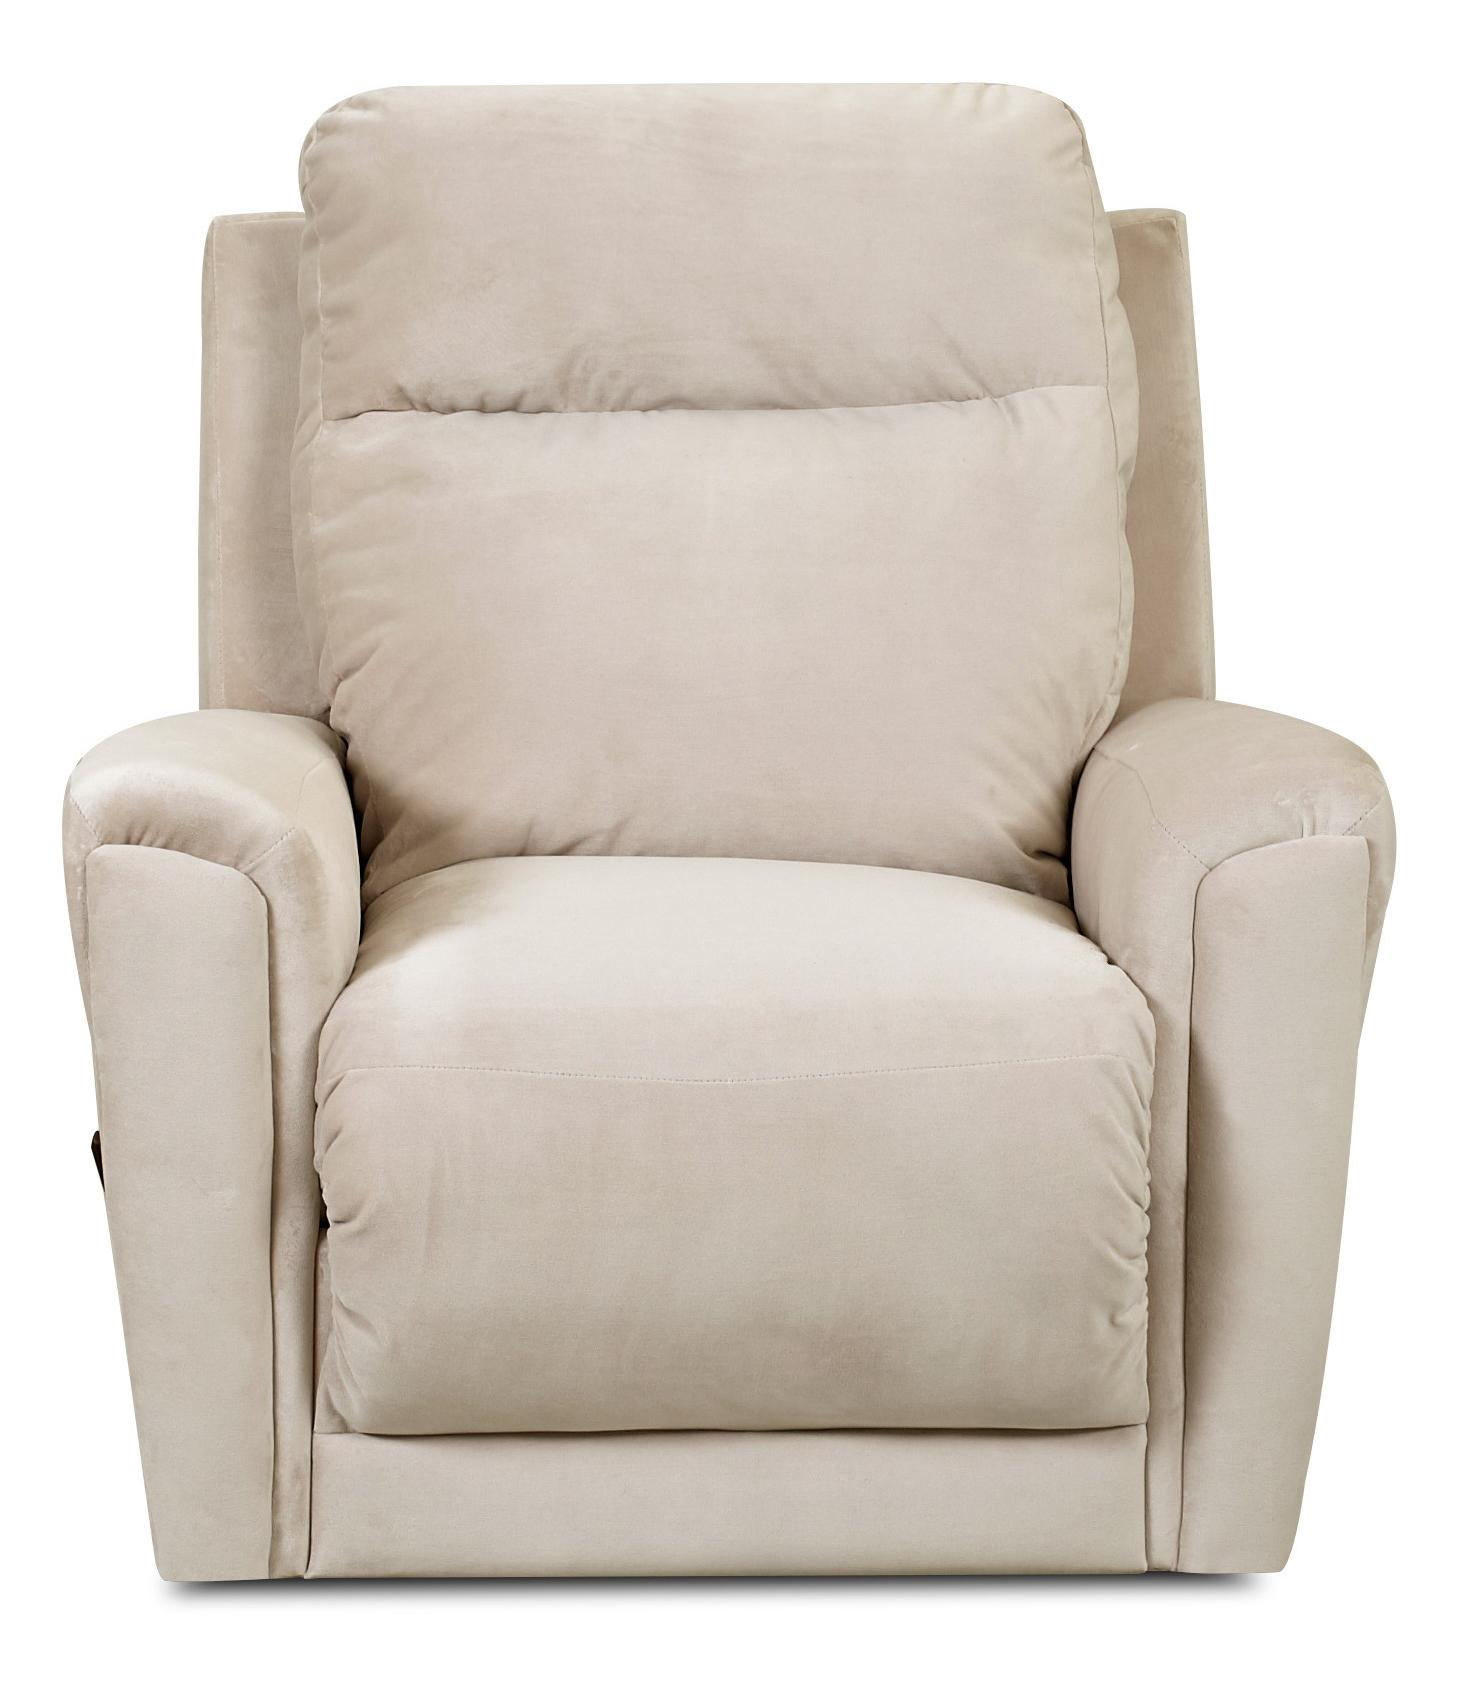 Transitional Reclining Chair